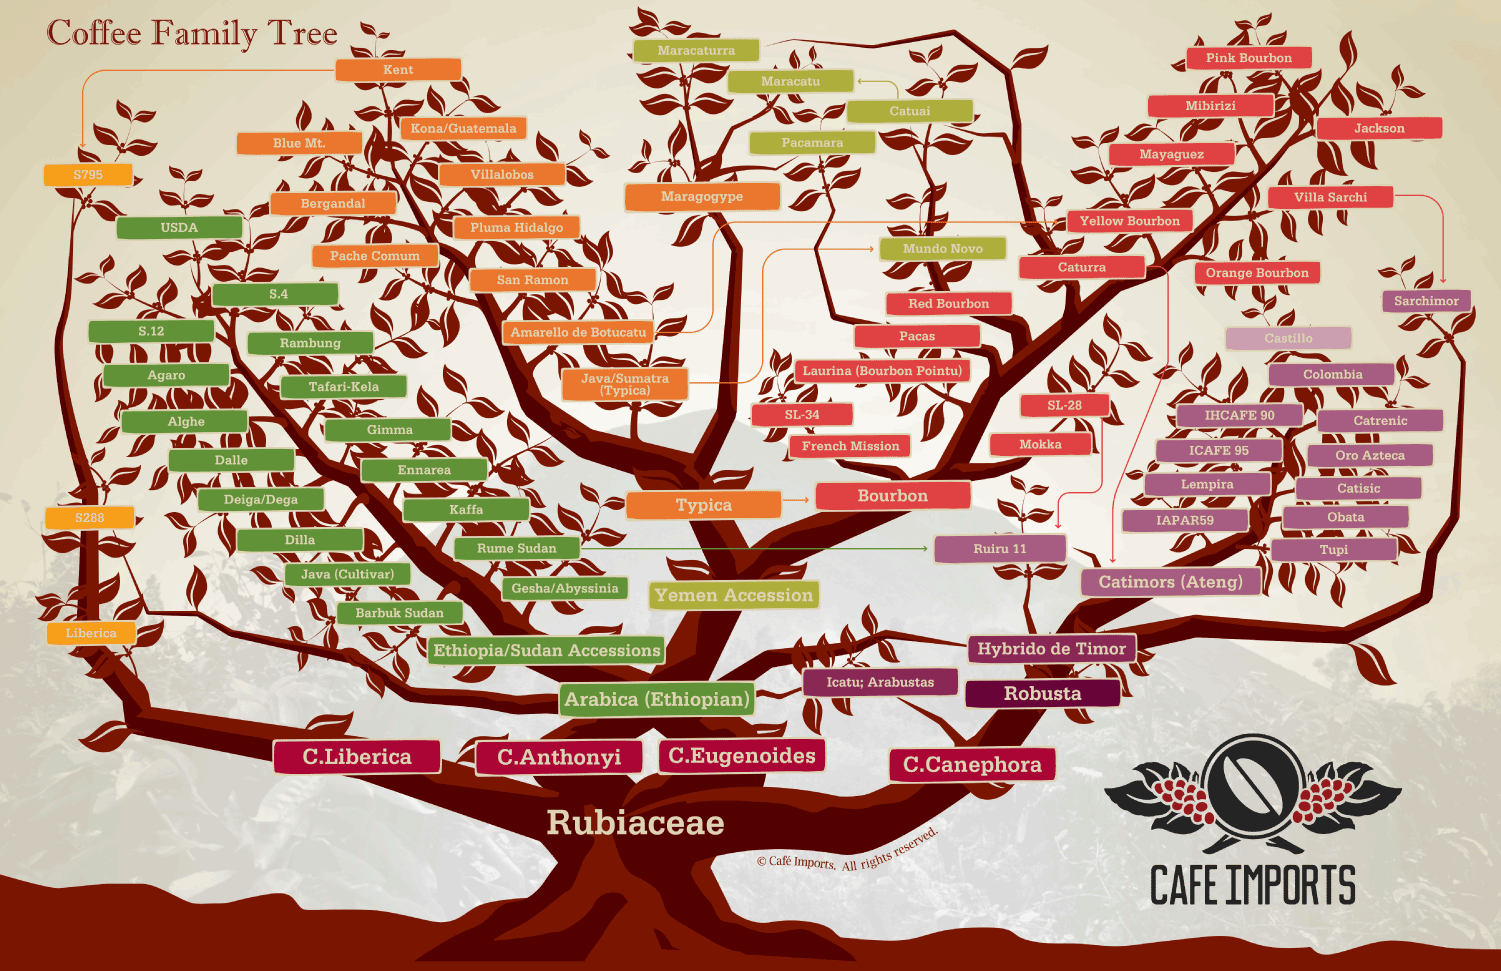 Cafe-Imports-Coffee-Family-Tree